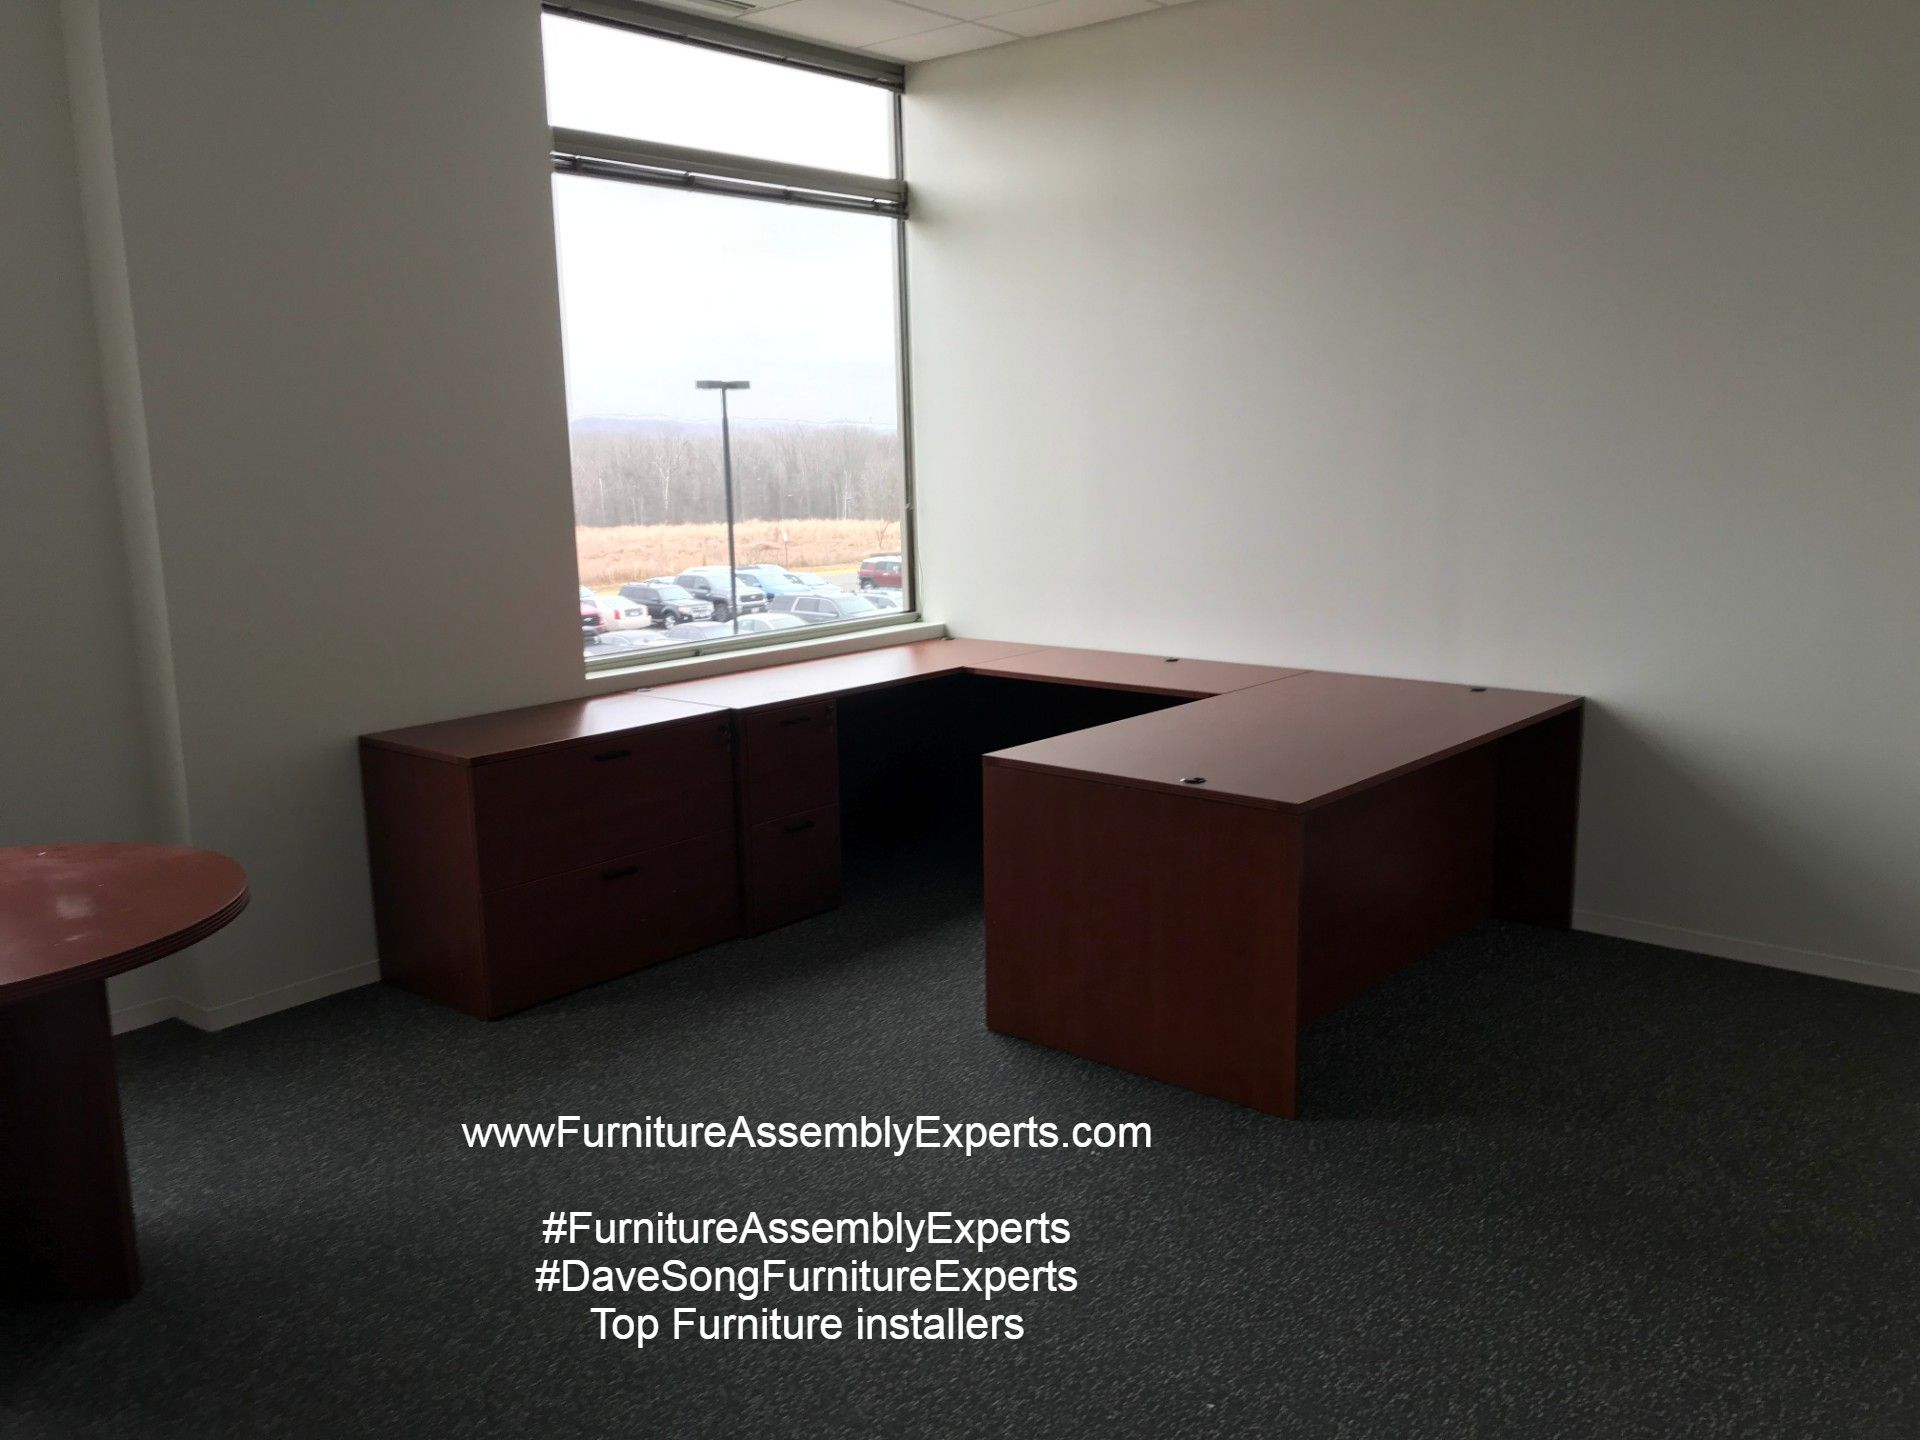 Commercial office furniture installation completed in Stafford Virginia by Dave Song`s Top Furniture assembly